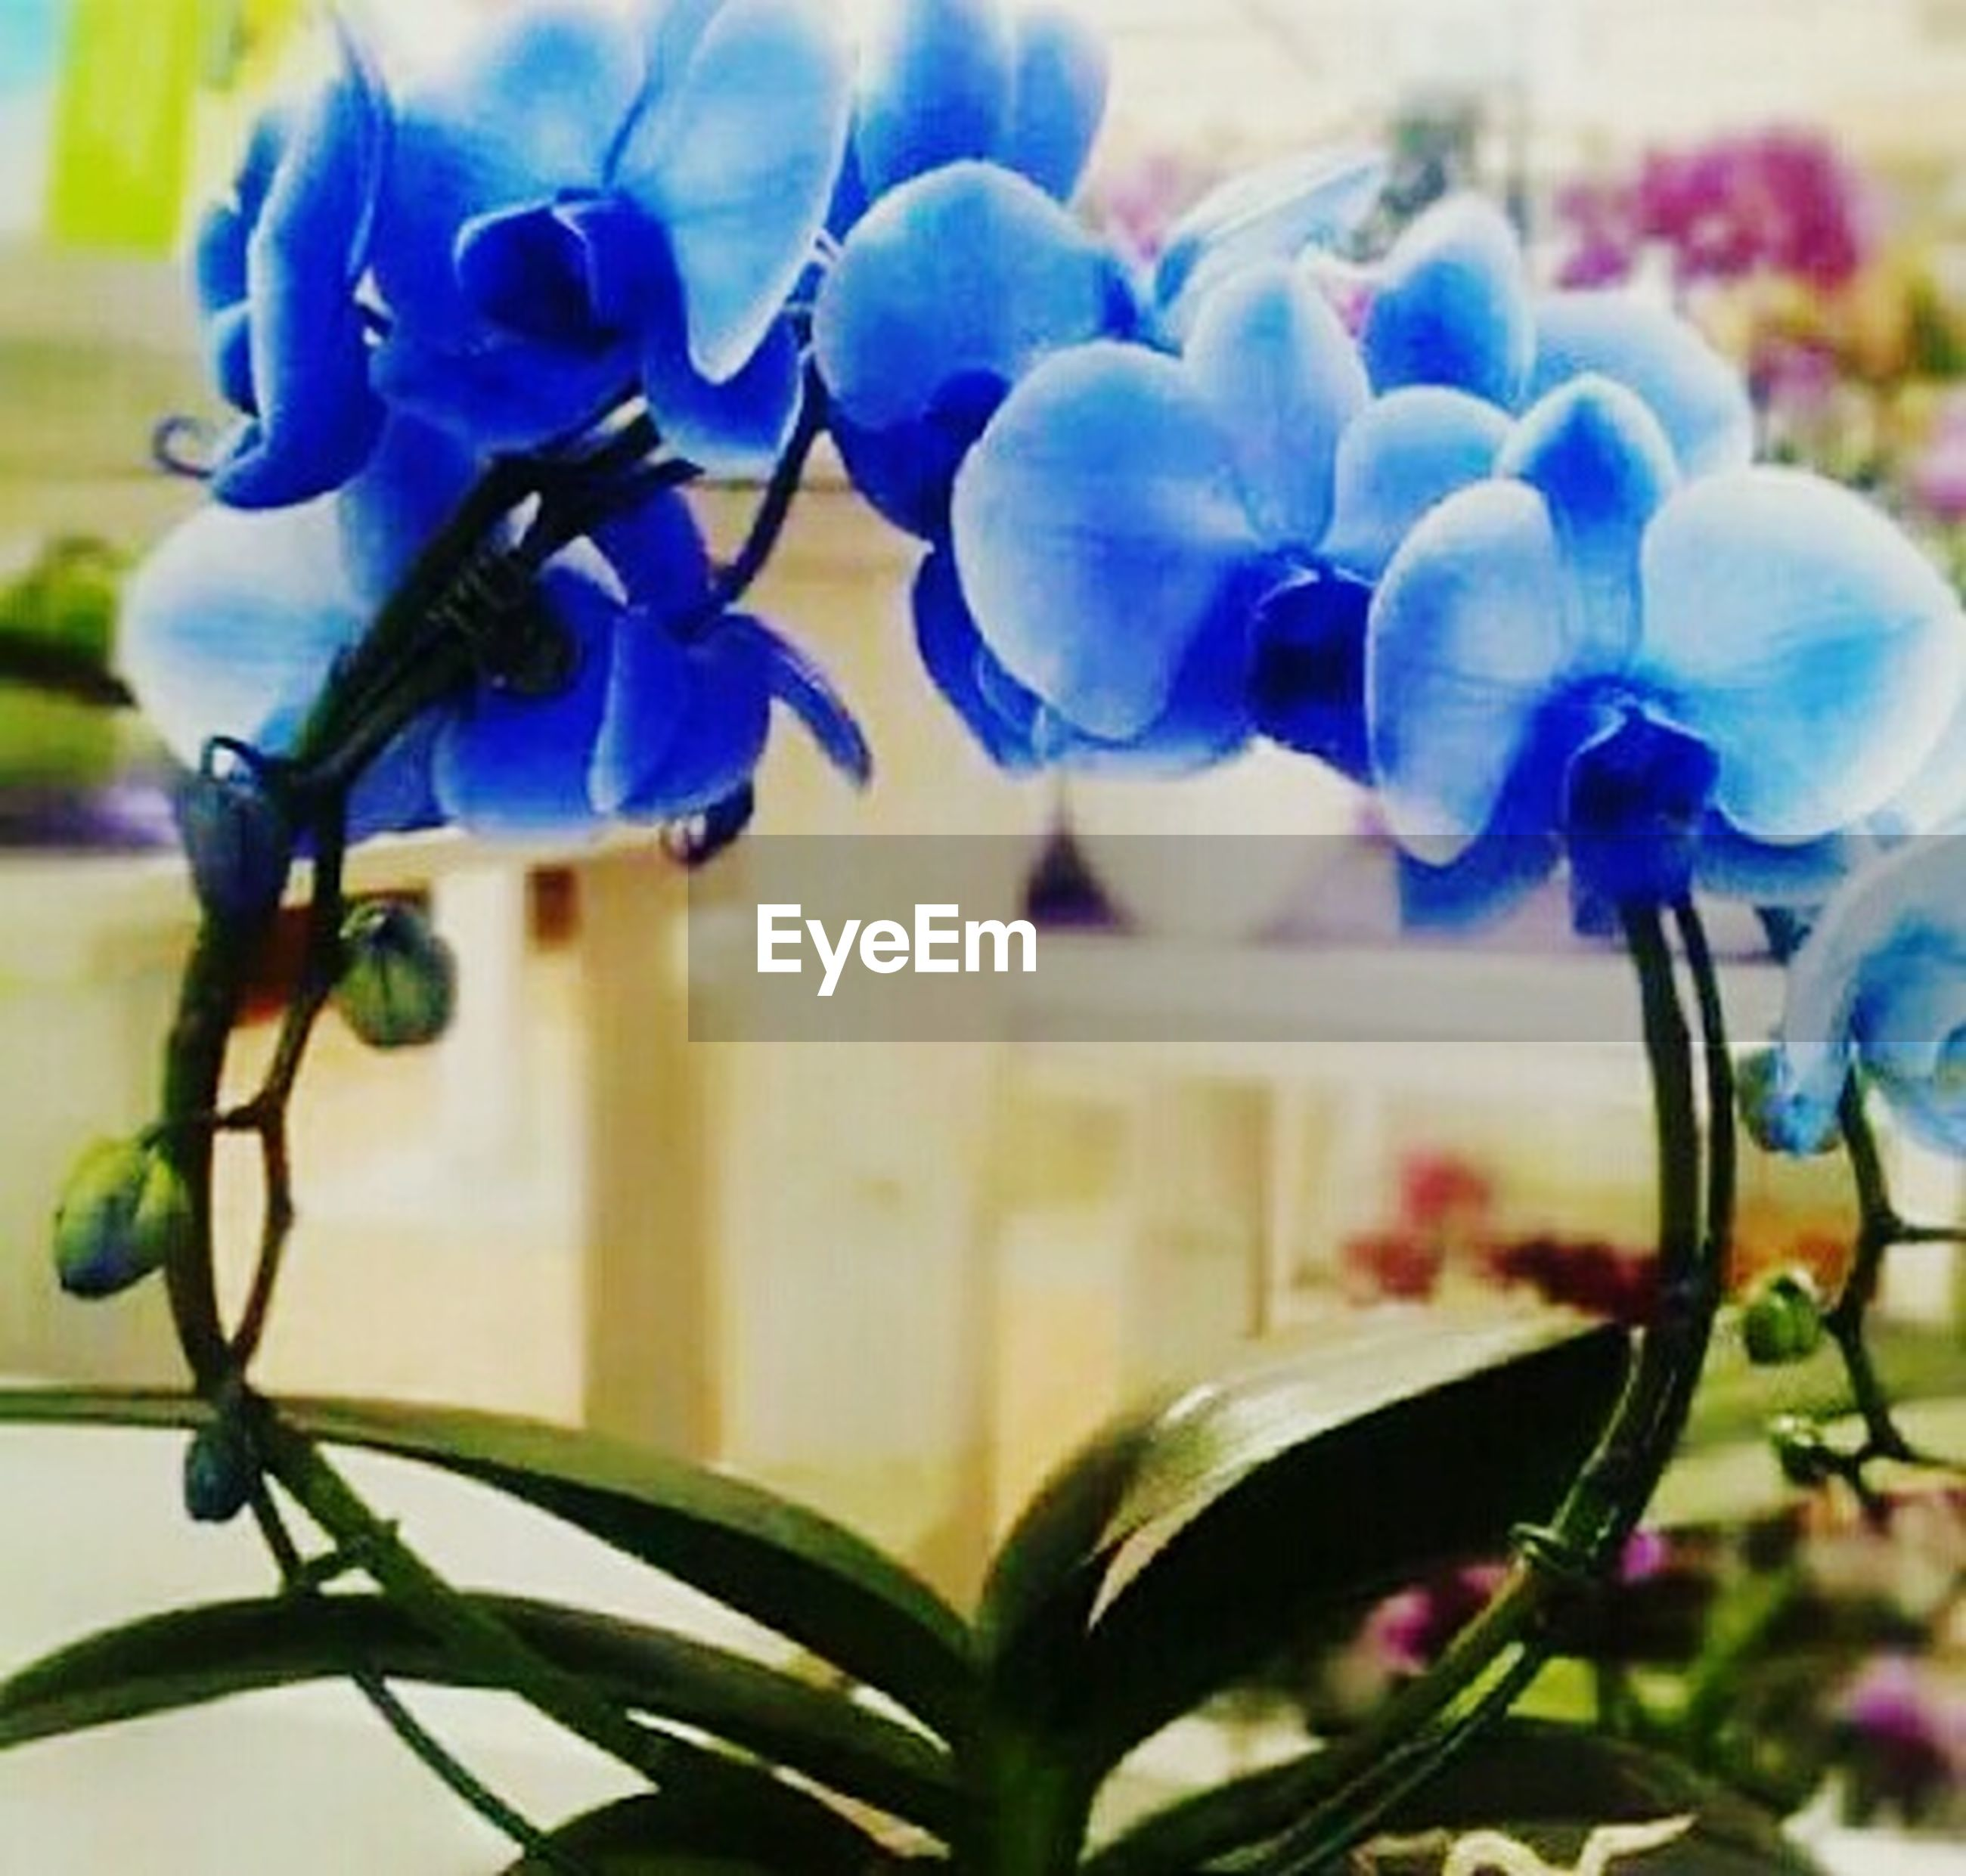 flower, plant, freshness, fragility, growth, focus on foreground, petal, close-up, flower head, purple, beauty in nature, nature, blooming, stem, blue, leaf, selective focus, bud, day, outdoors